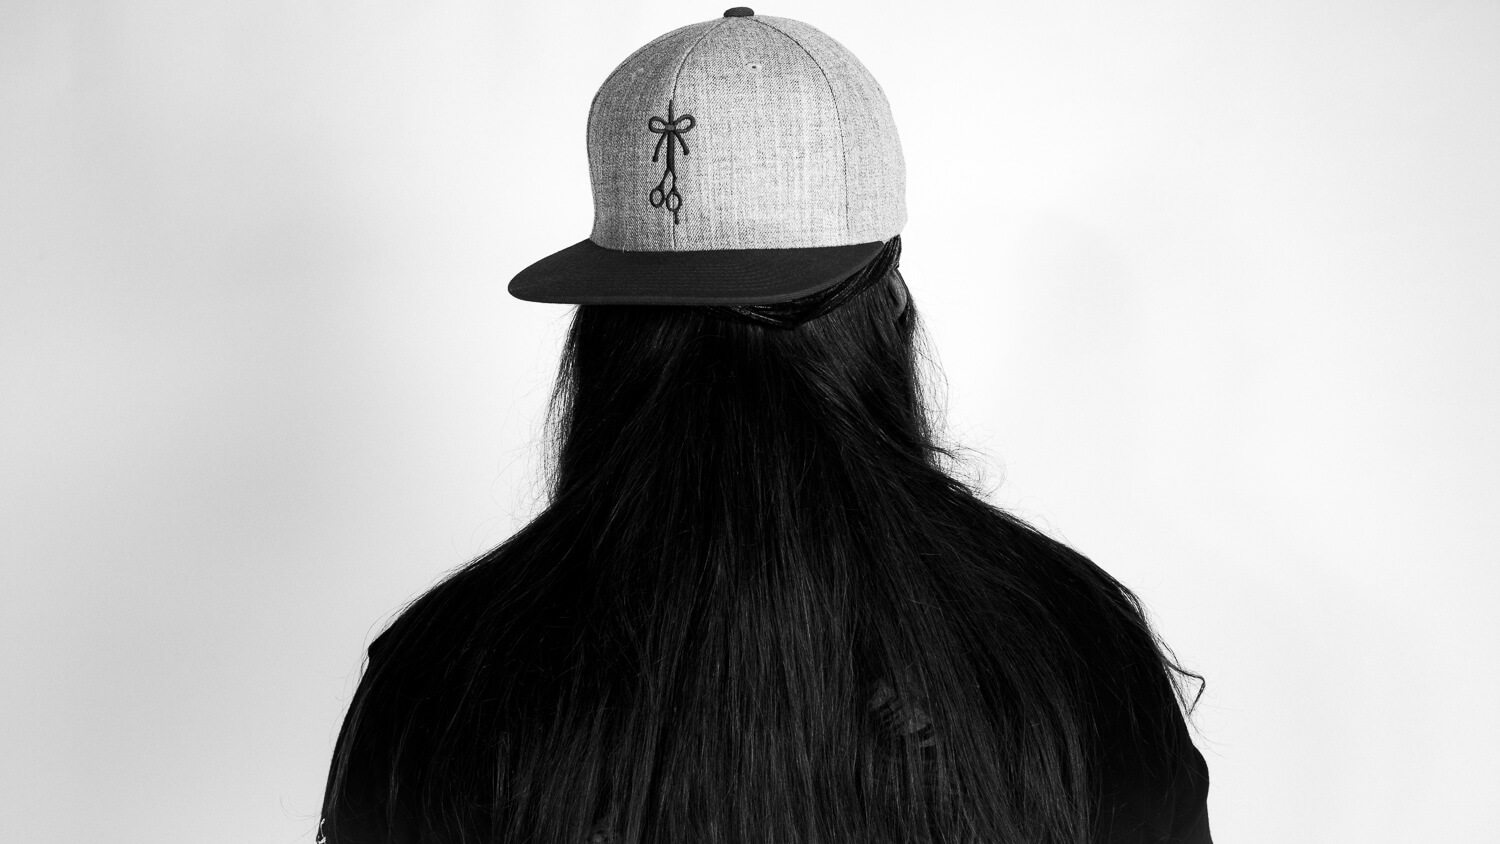 Back view of The Over Under hat style.